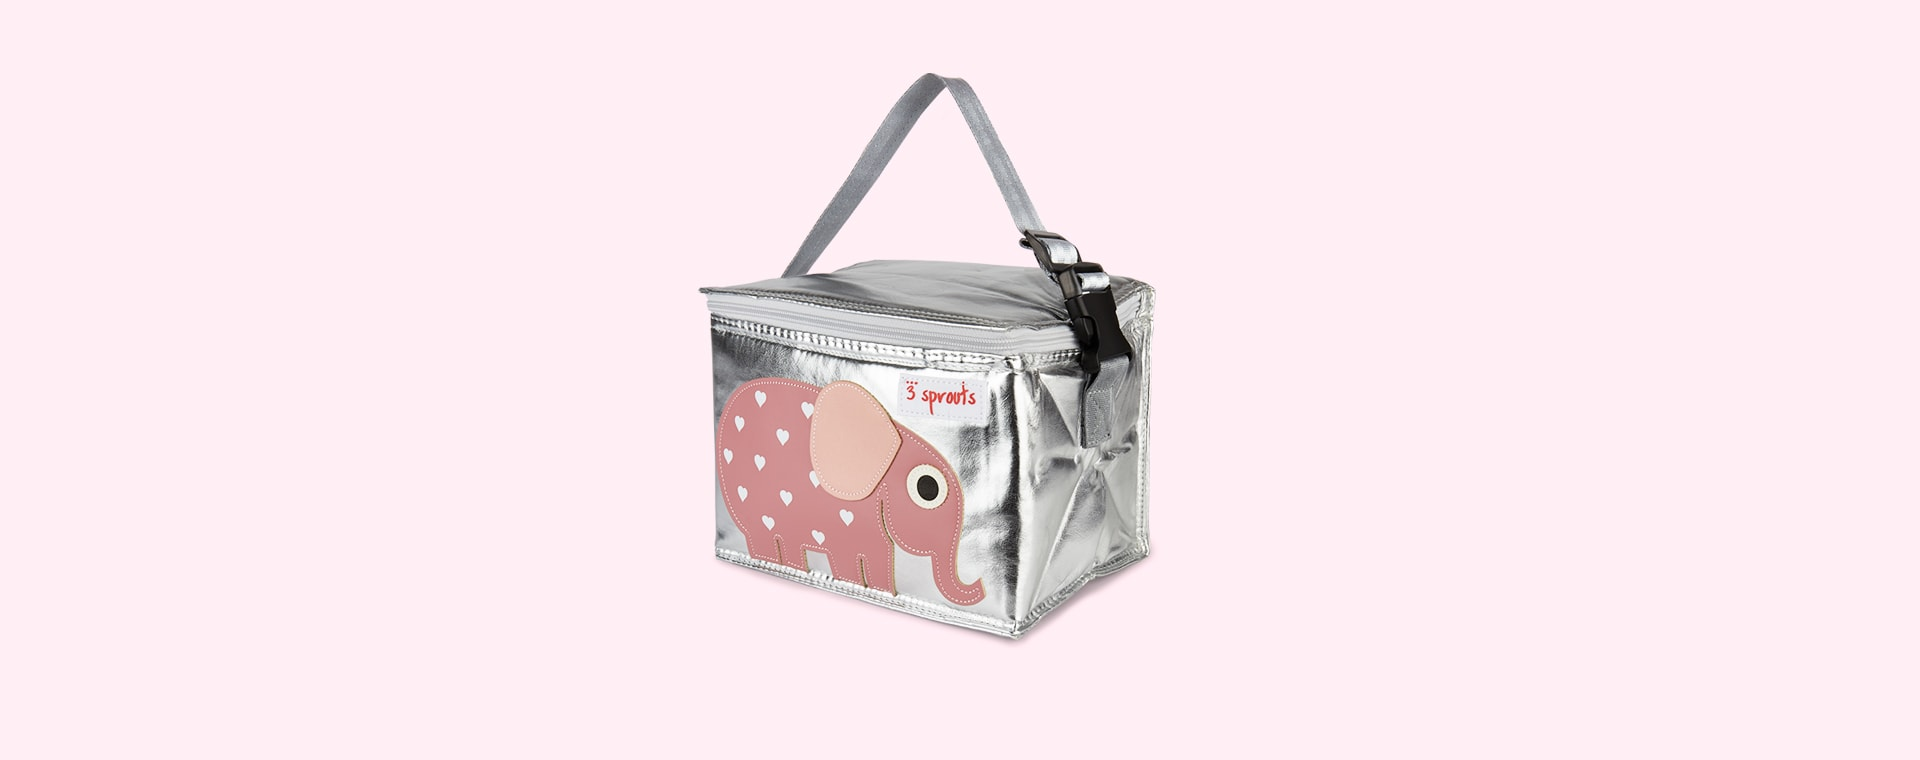 3-sprouts-elephant-lunchbox-pink-1920x760_01